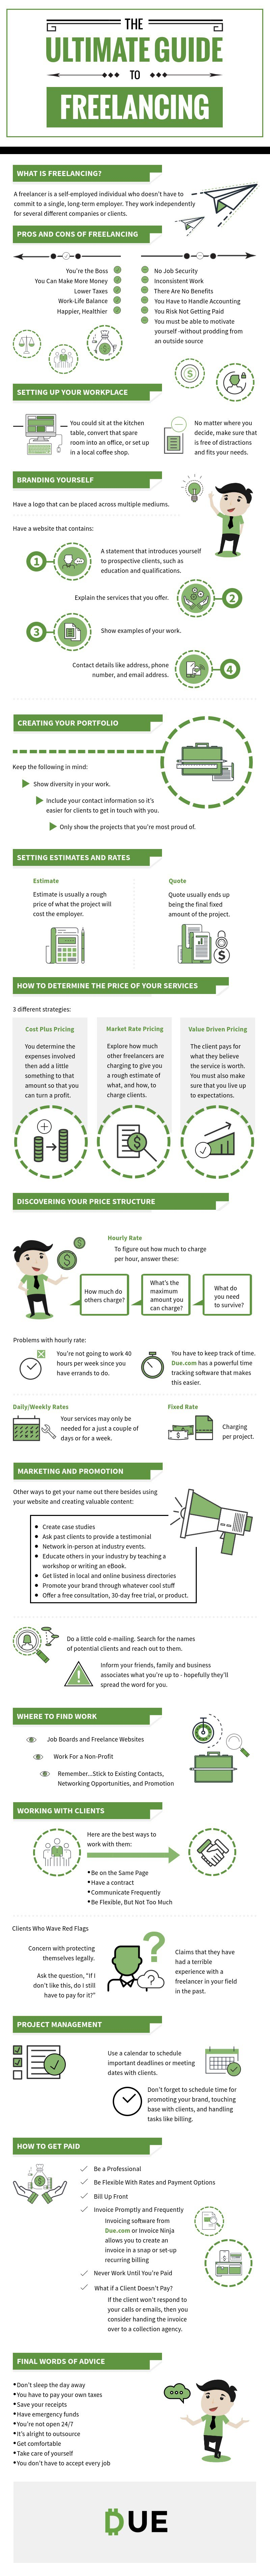 The Ultimate Guide to Freelancing - #infographic